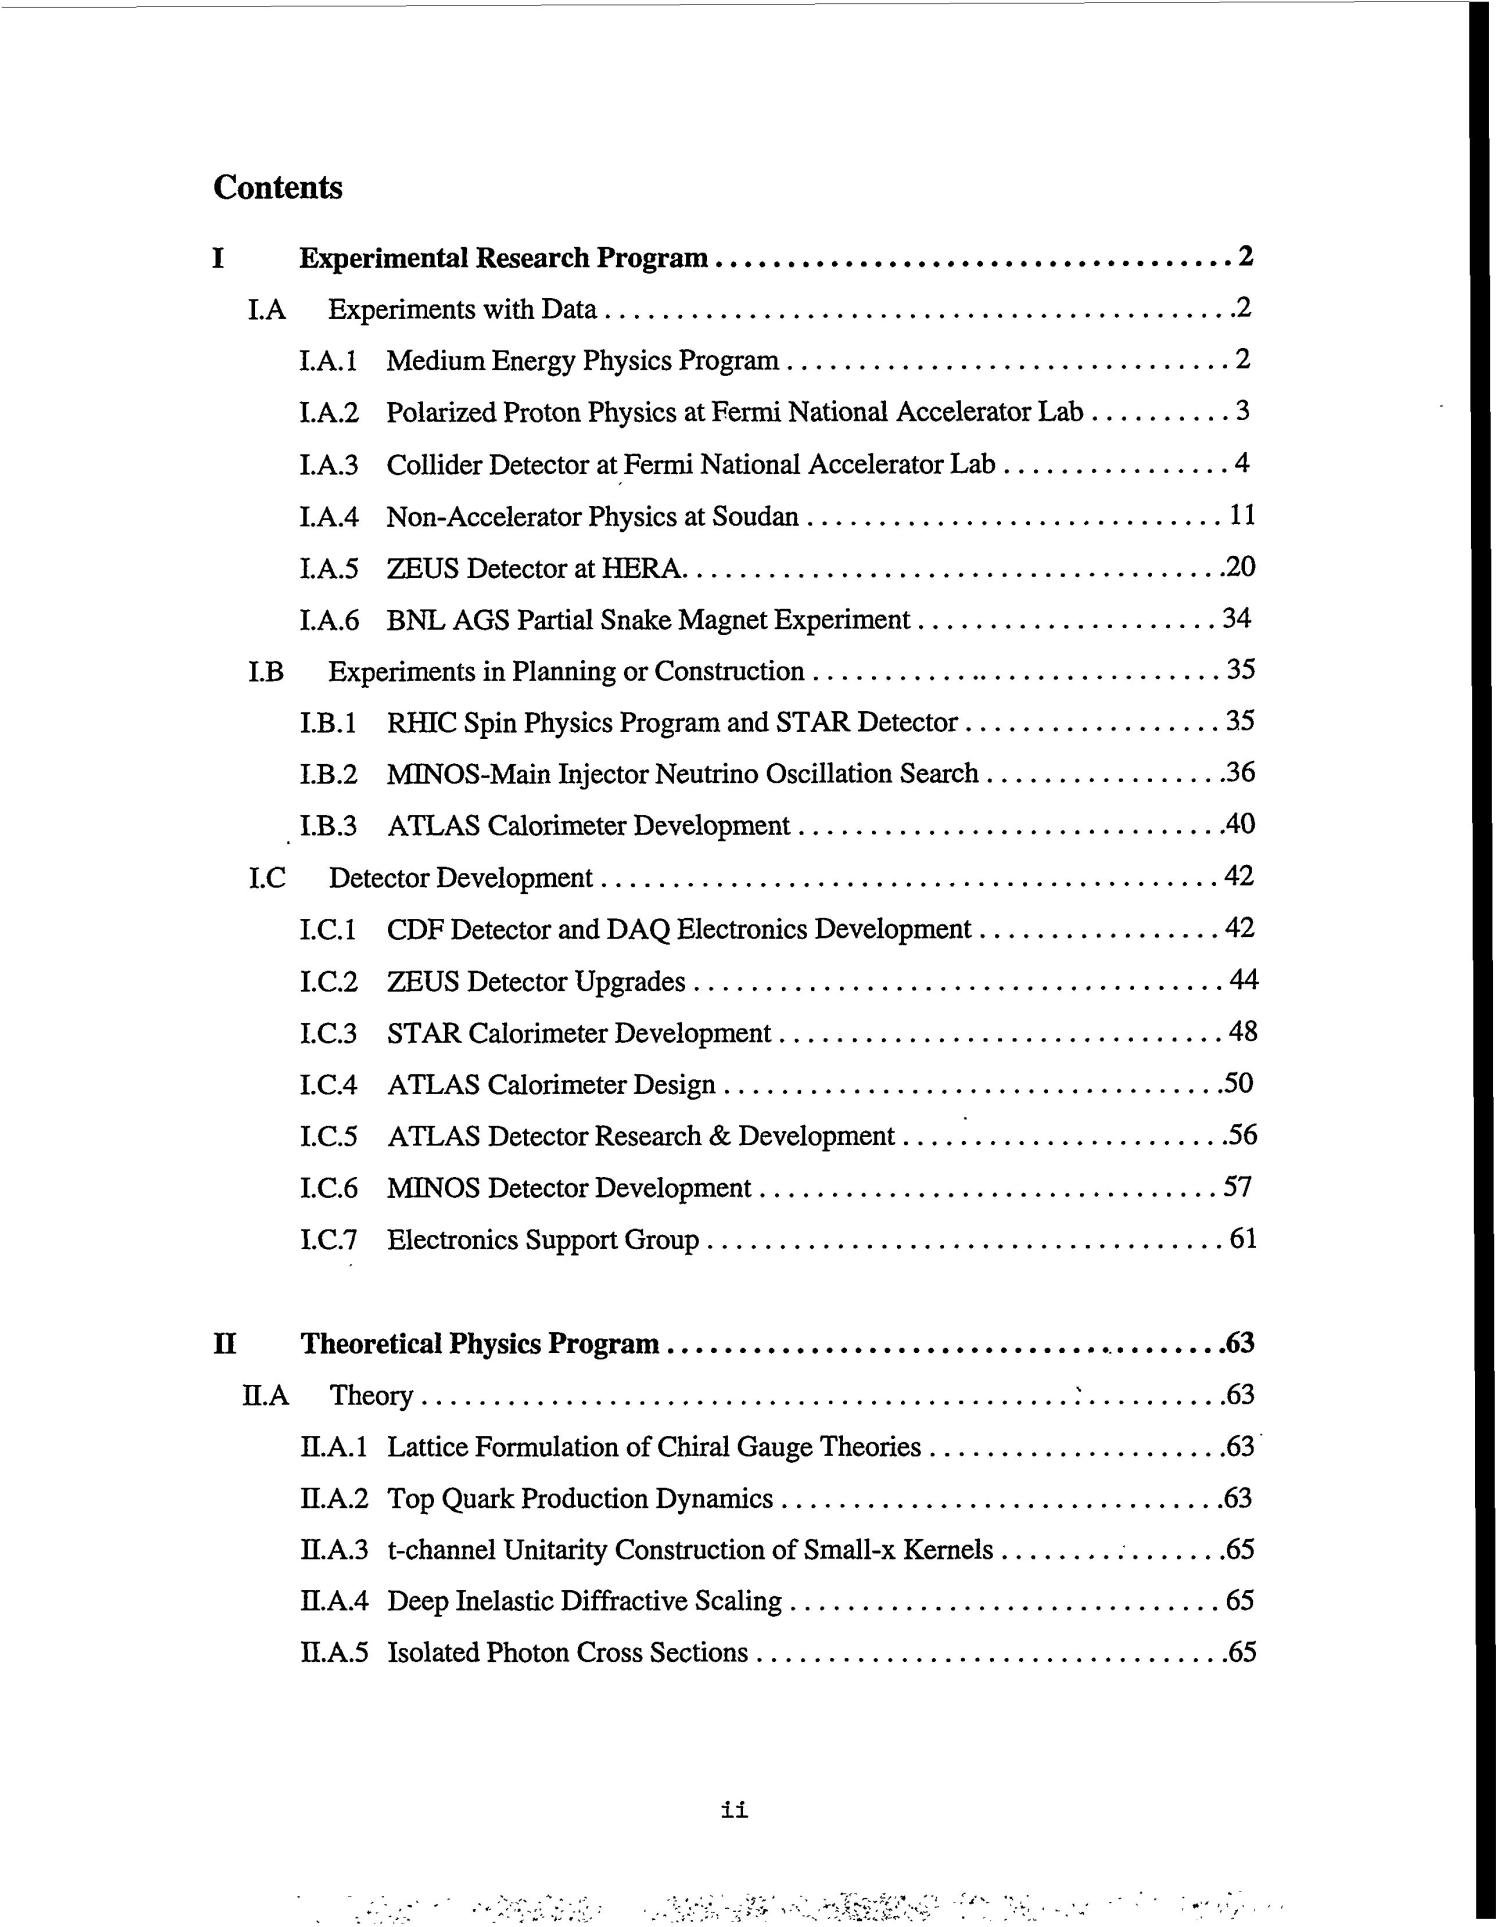 High Energy Physics Division semiannual report of research activities. Semi-annual progress report, July 1, 1995--December 31, 1995                                                                                                      [Sequence #]: 2 of 106